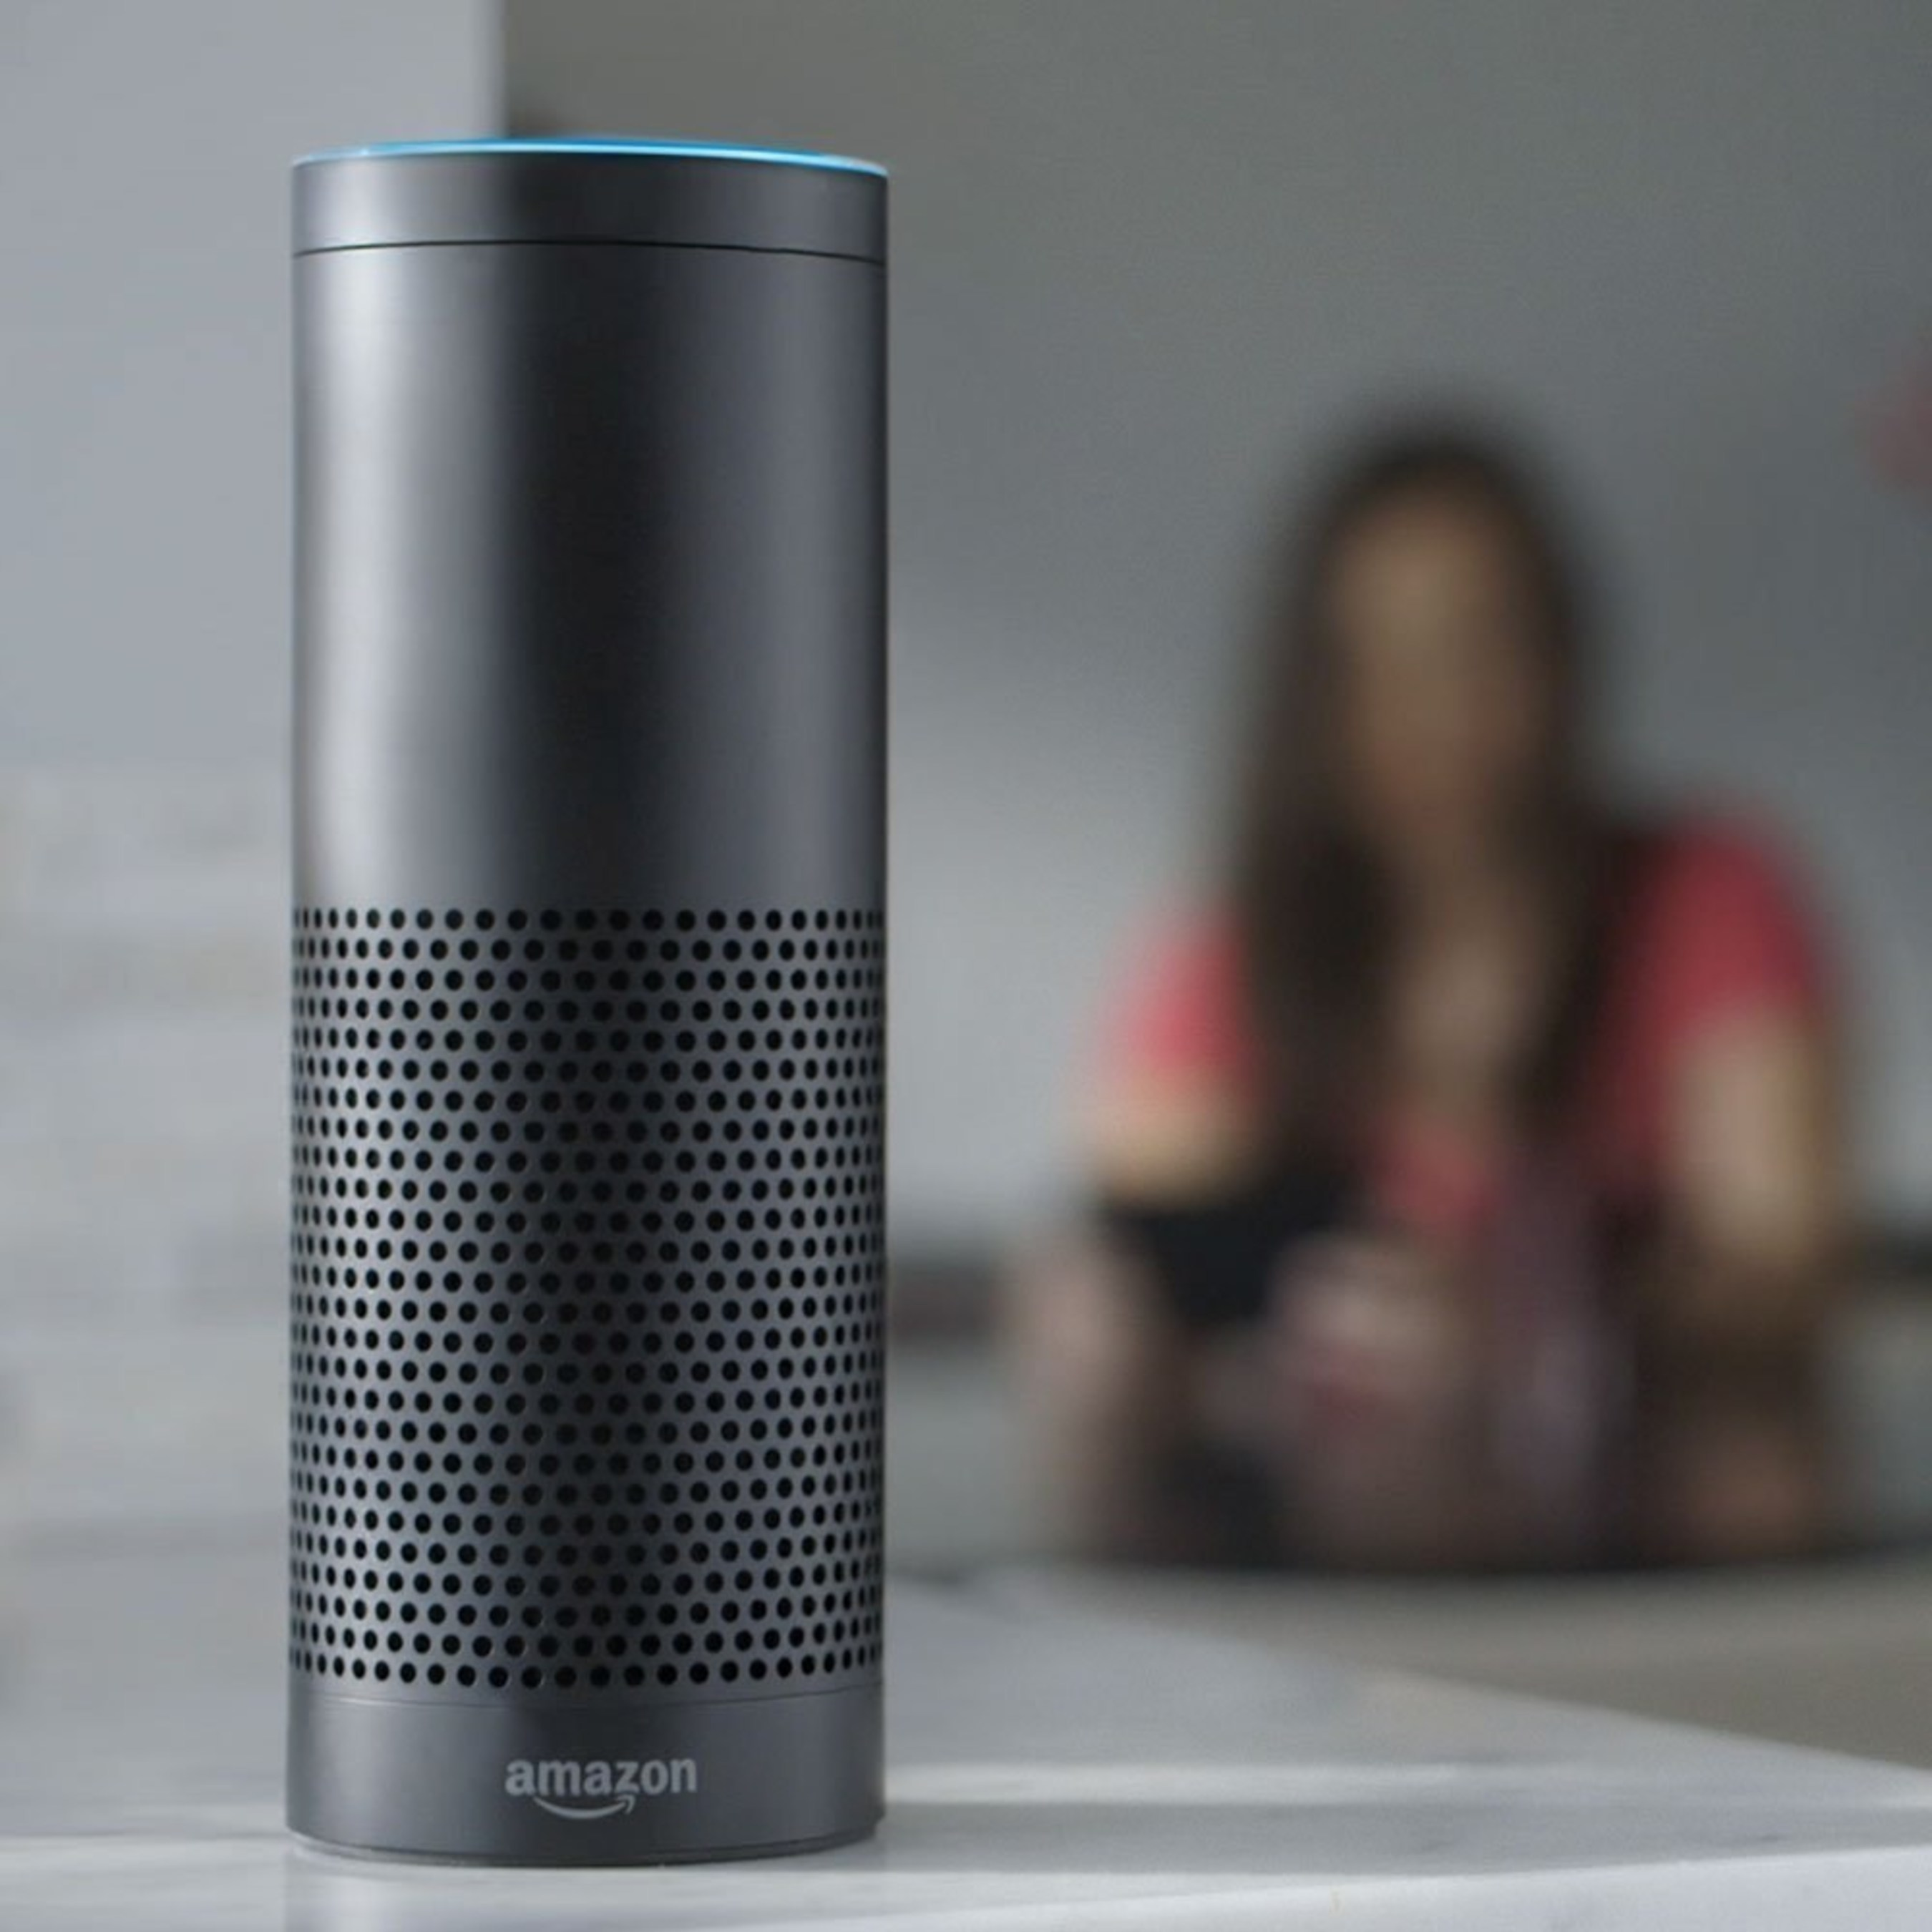 Domino's Pizza is bringing its fan-favorite Domino's Tracker and ordering capabilities to Amazon Echo, just in time for the big game on Feb. 7.